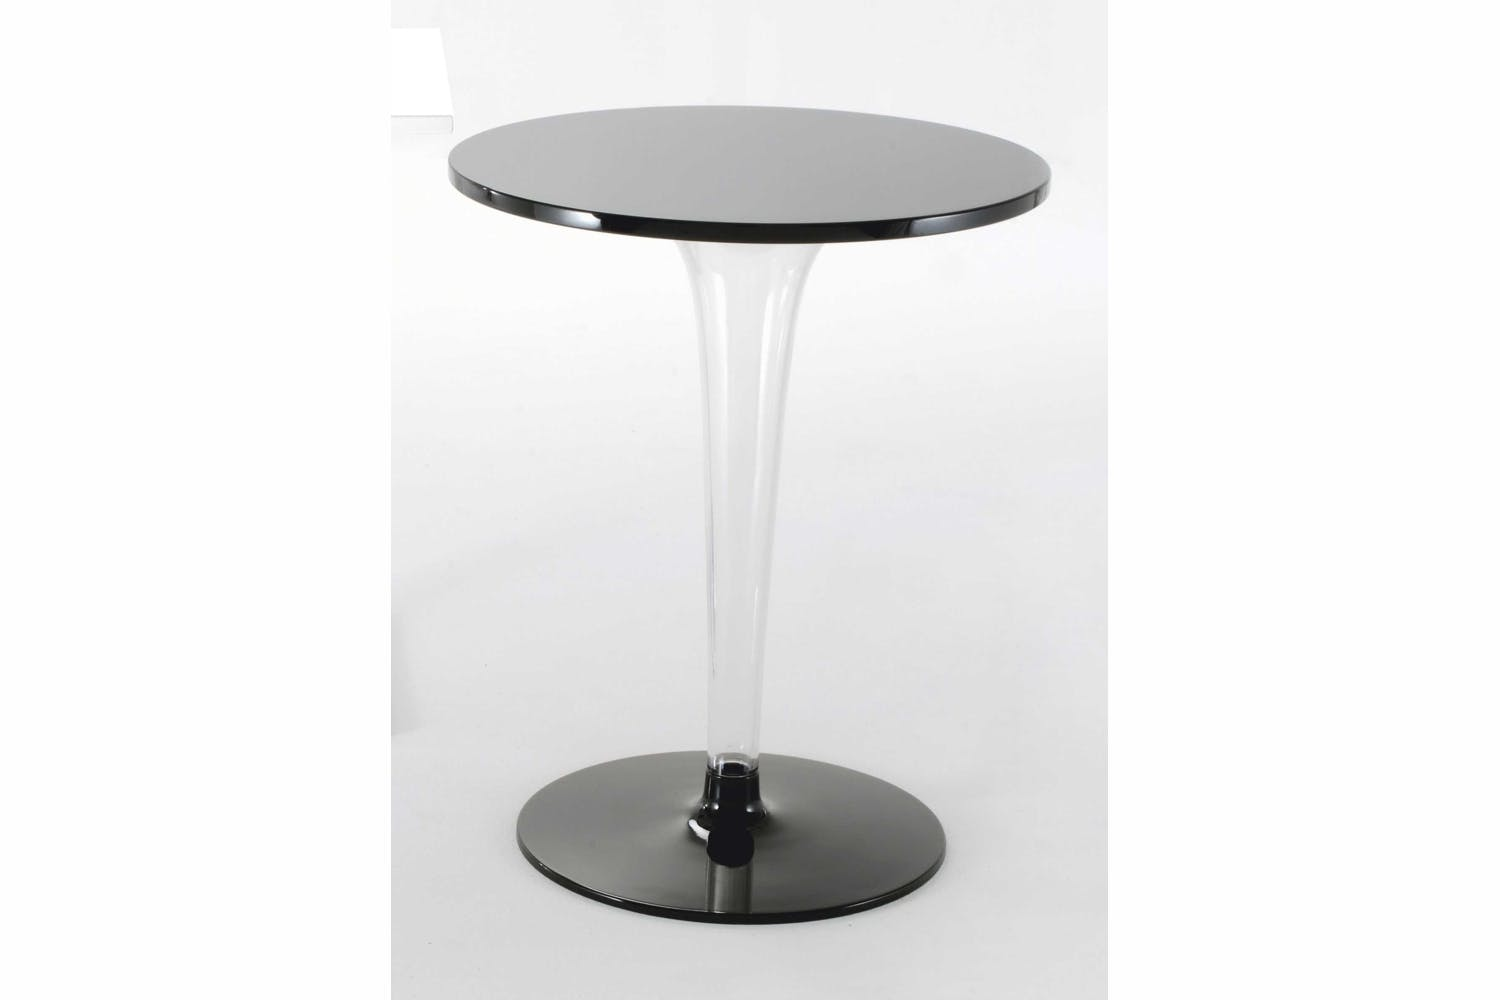 Kartell Round Table Toptop For Dr Yes Table With Round Leg By Philippe Starck With